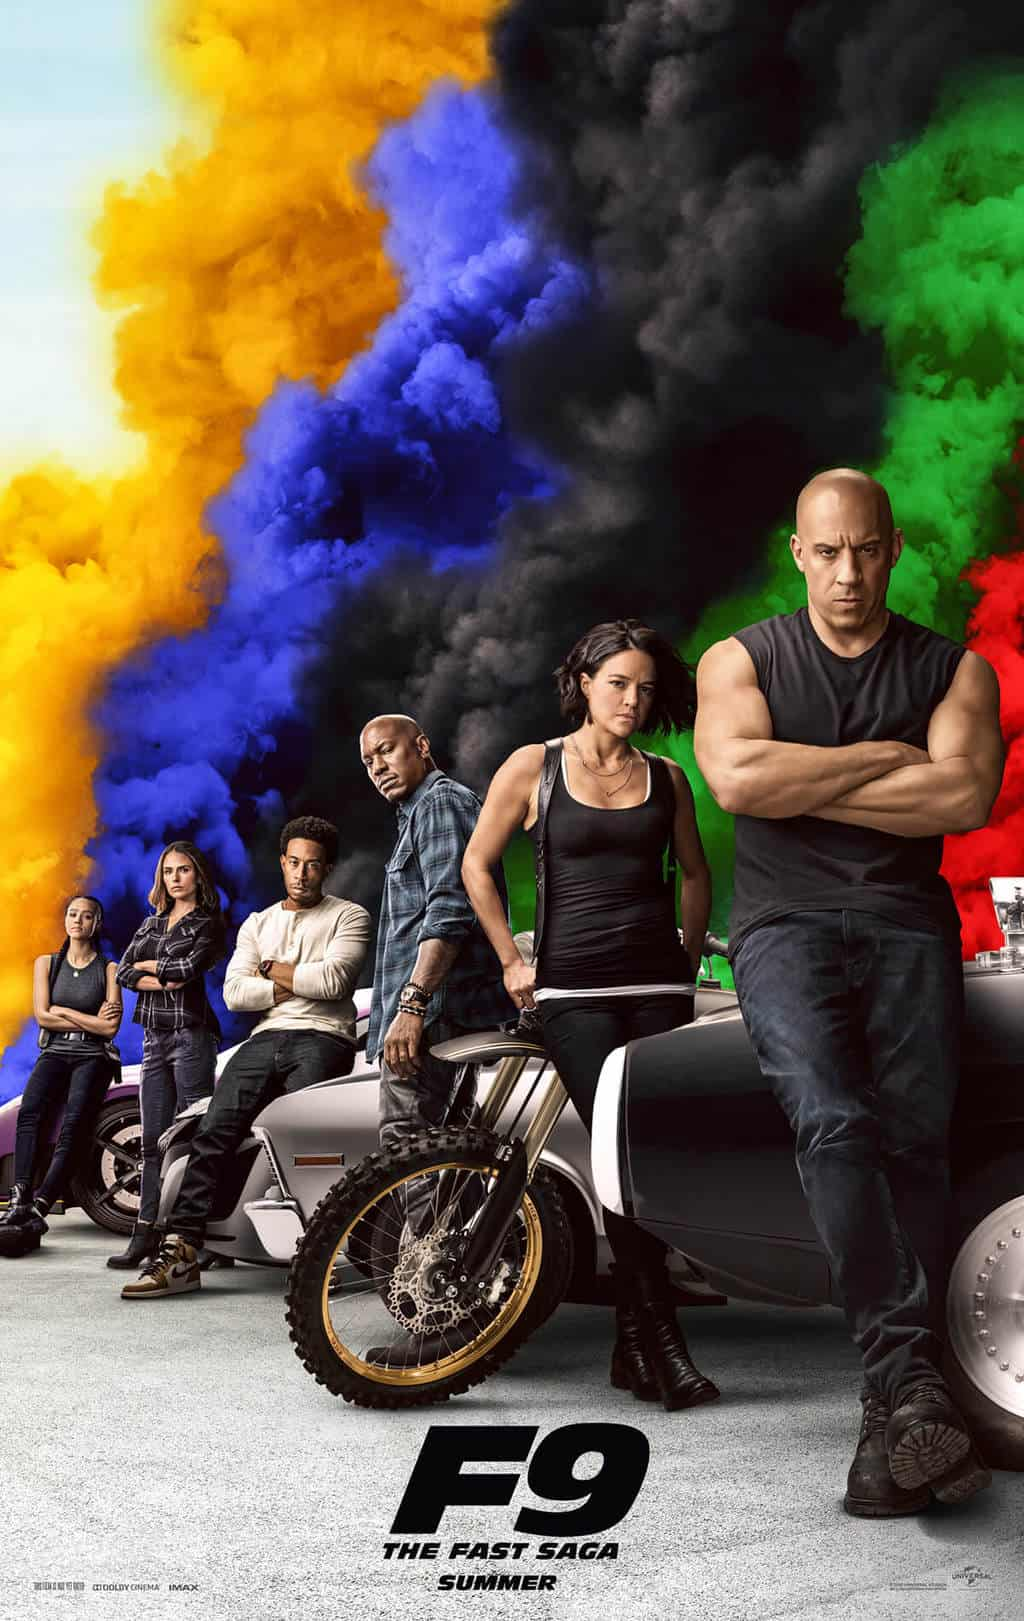 is F9 safe for kids? fast and furious parent movie guide